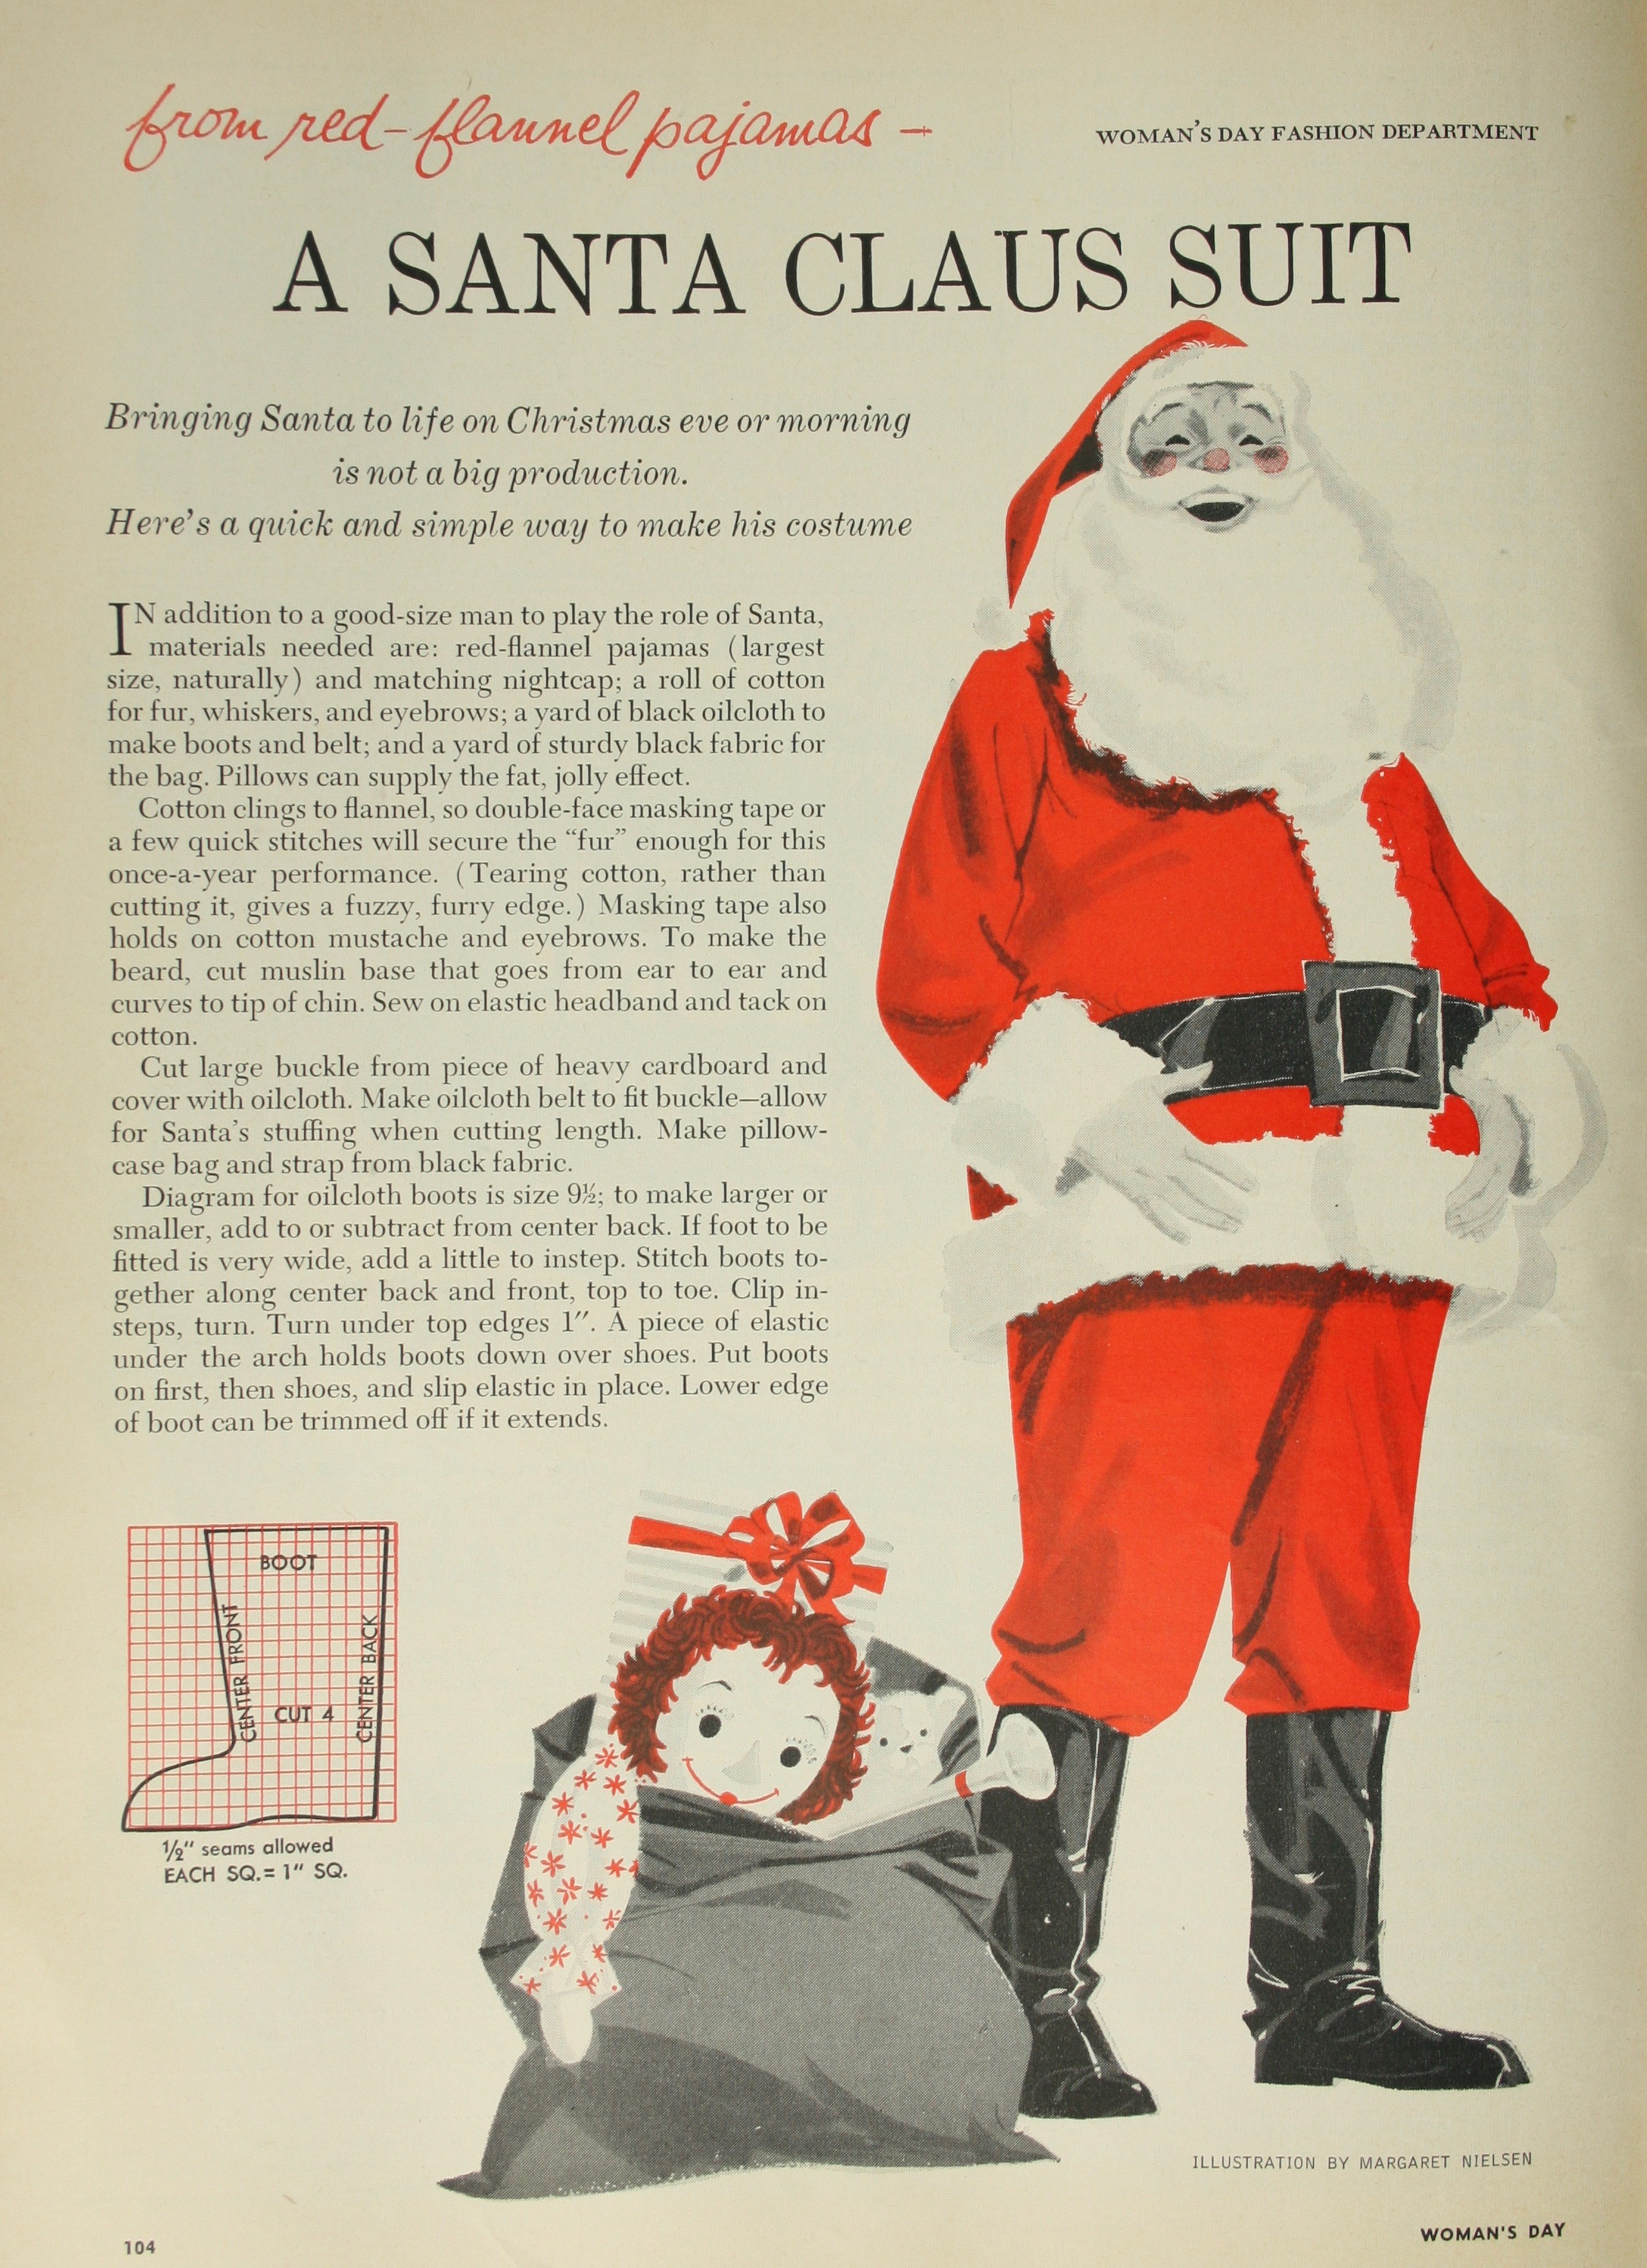 Dressing Santa? A frugal outfit using red flannel pajamas!